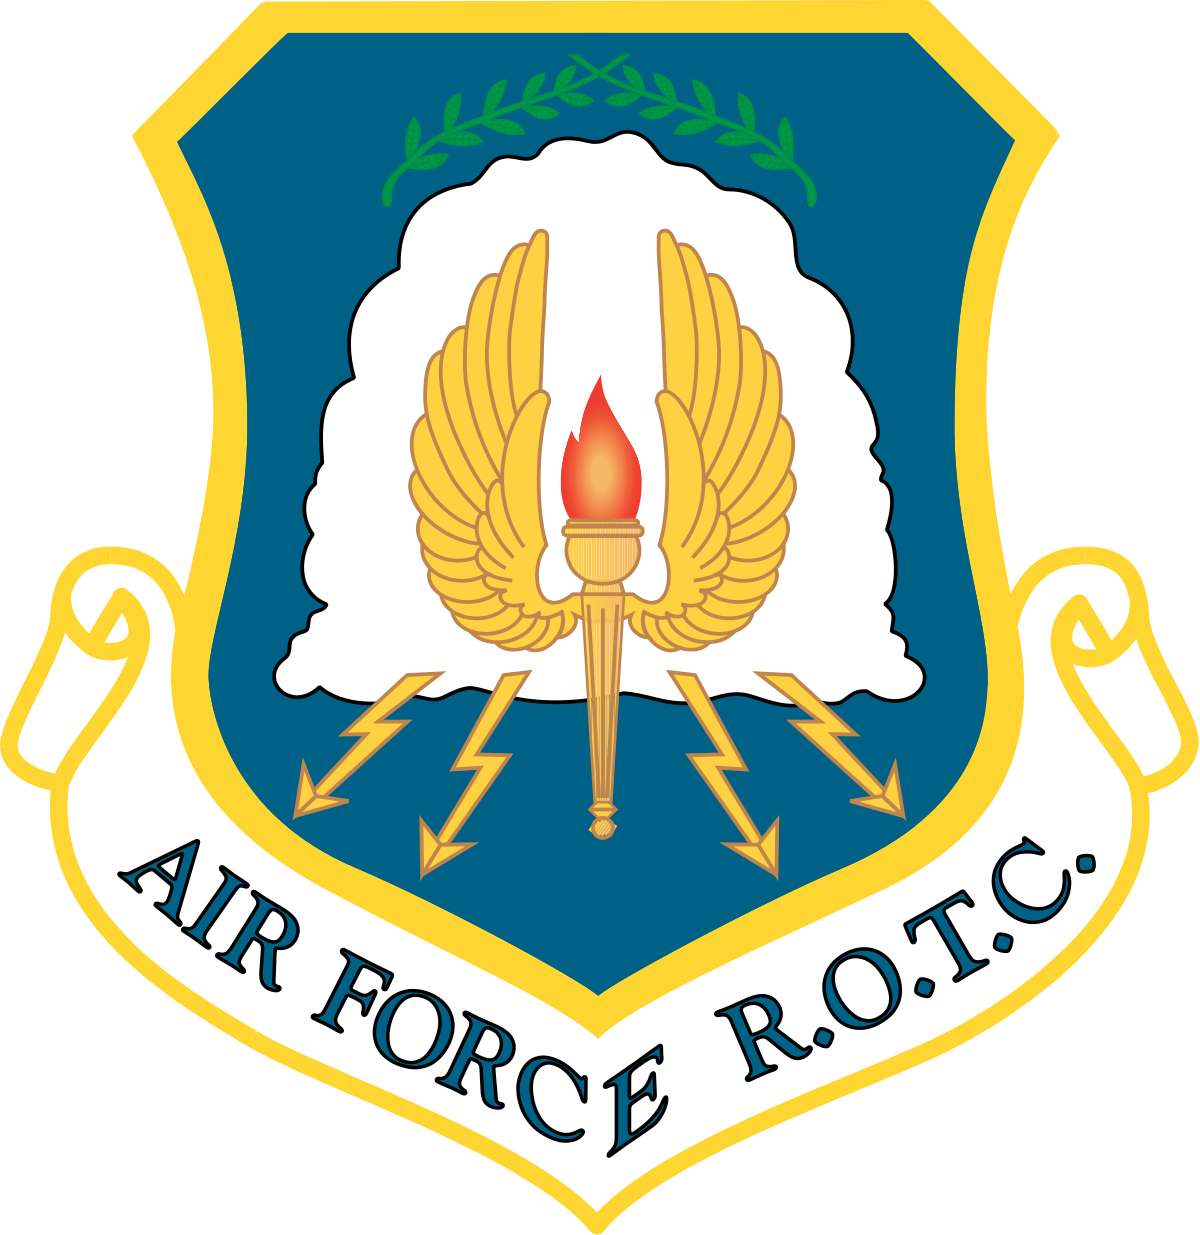 Air Force R.O.T.C. shield logo.